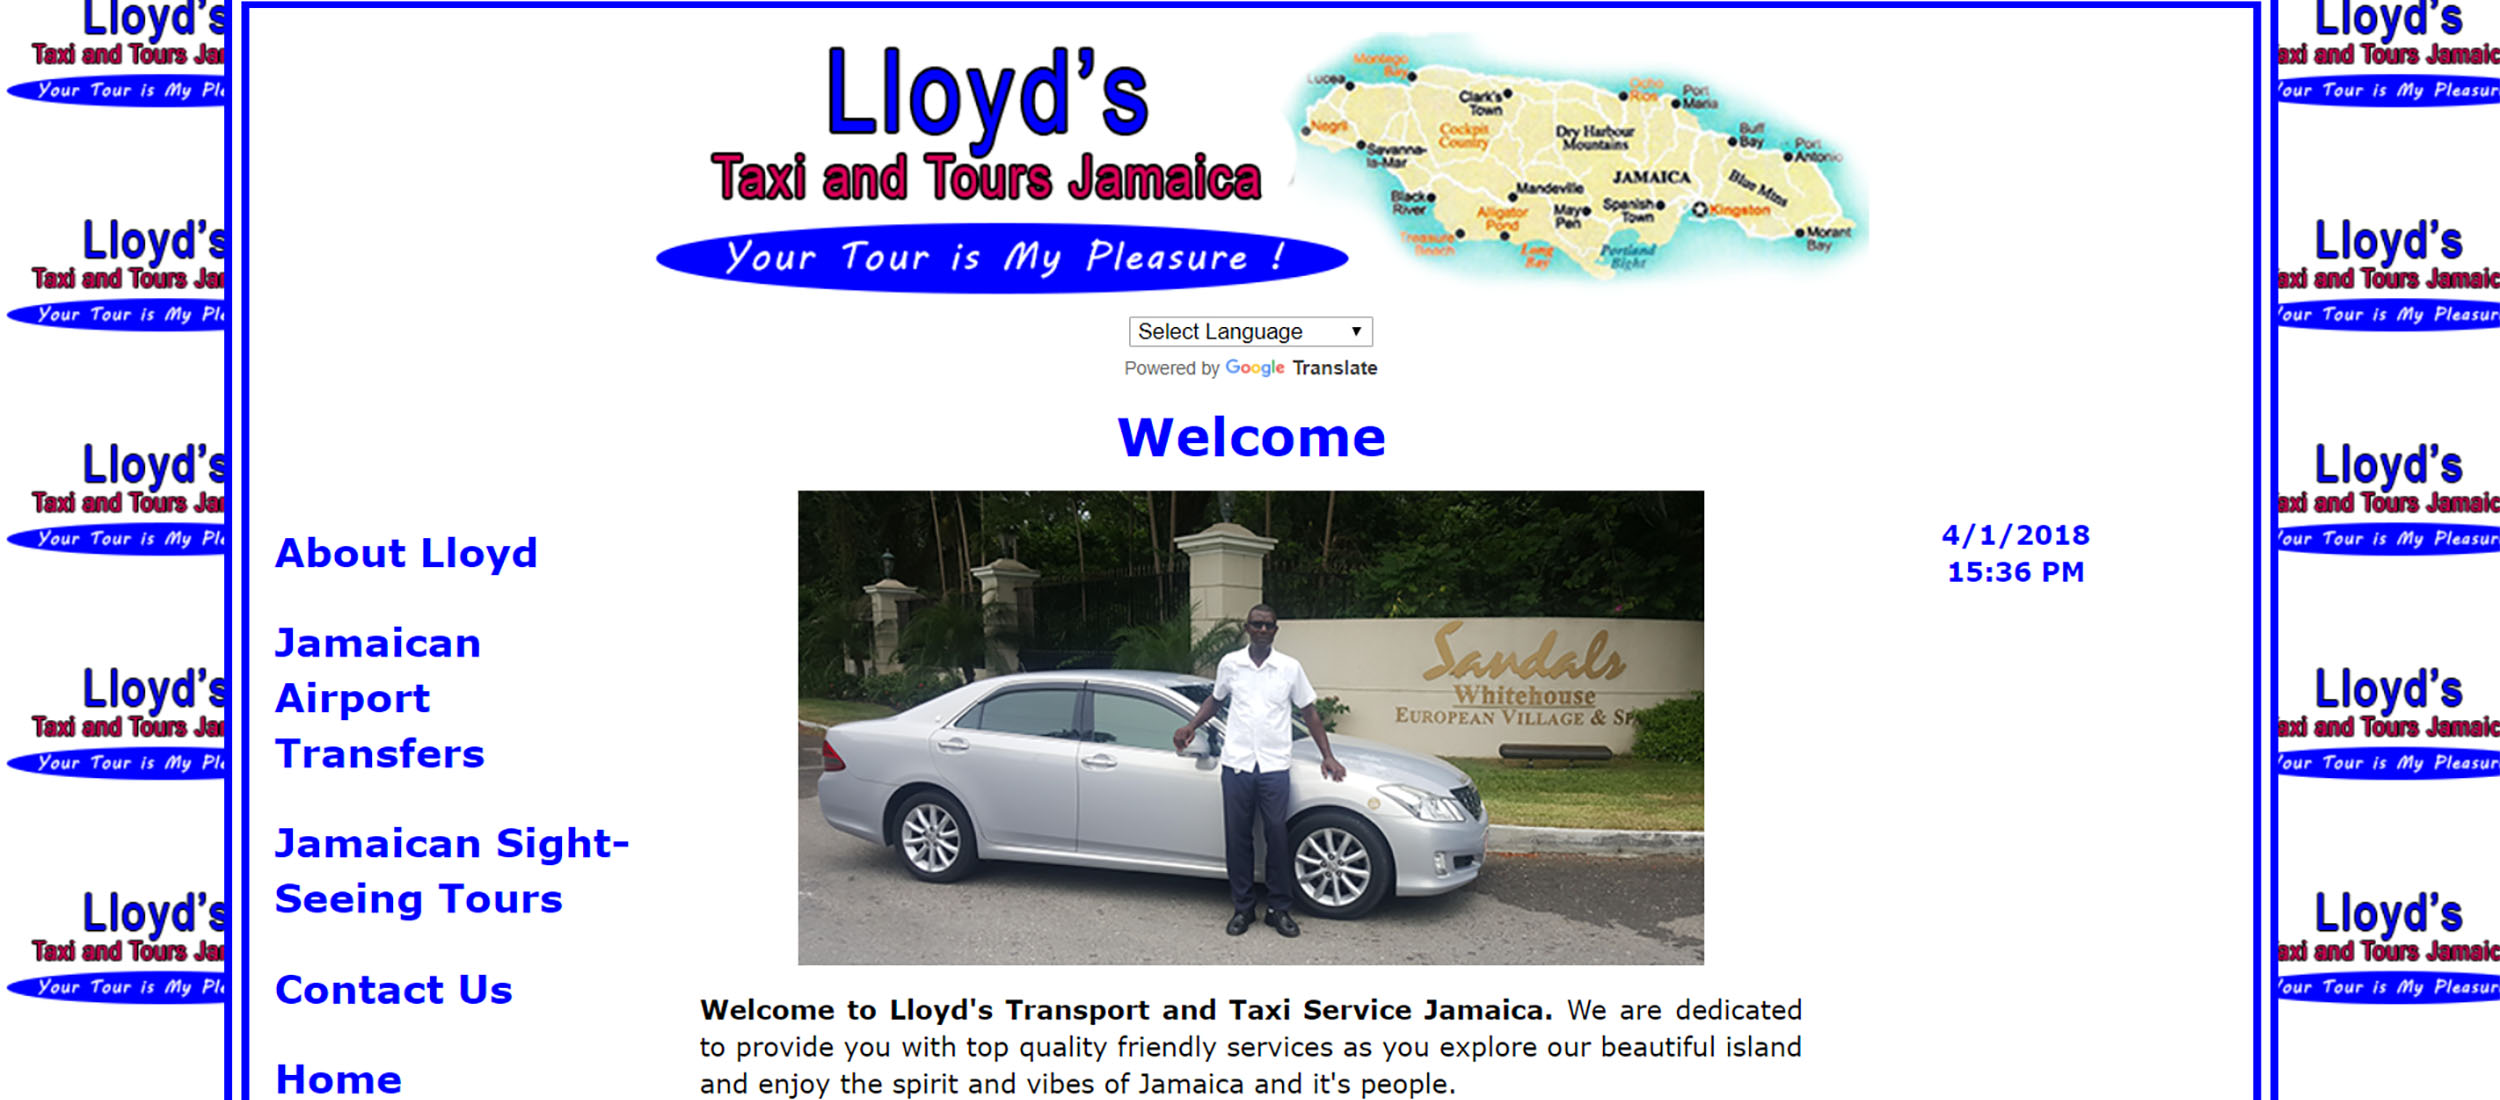 Lloyd's Taxi and Tours Jamaica by Barry J. Hough S.r